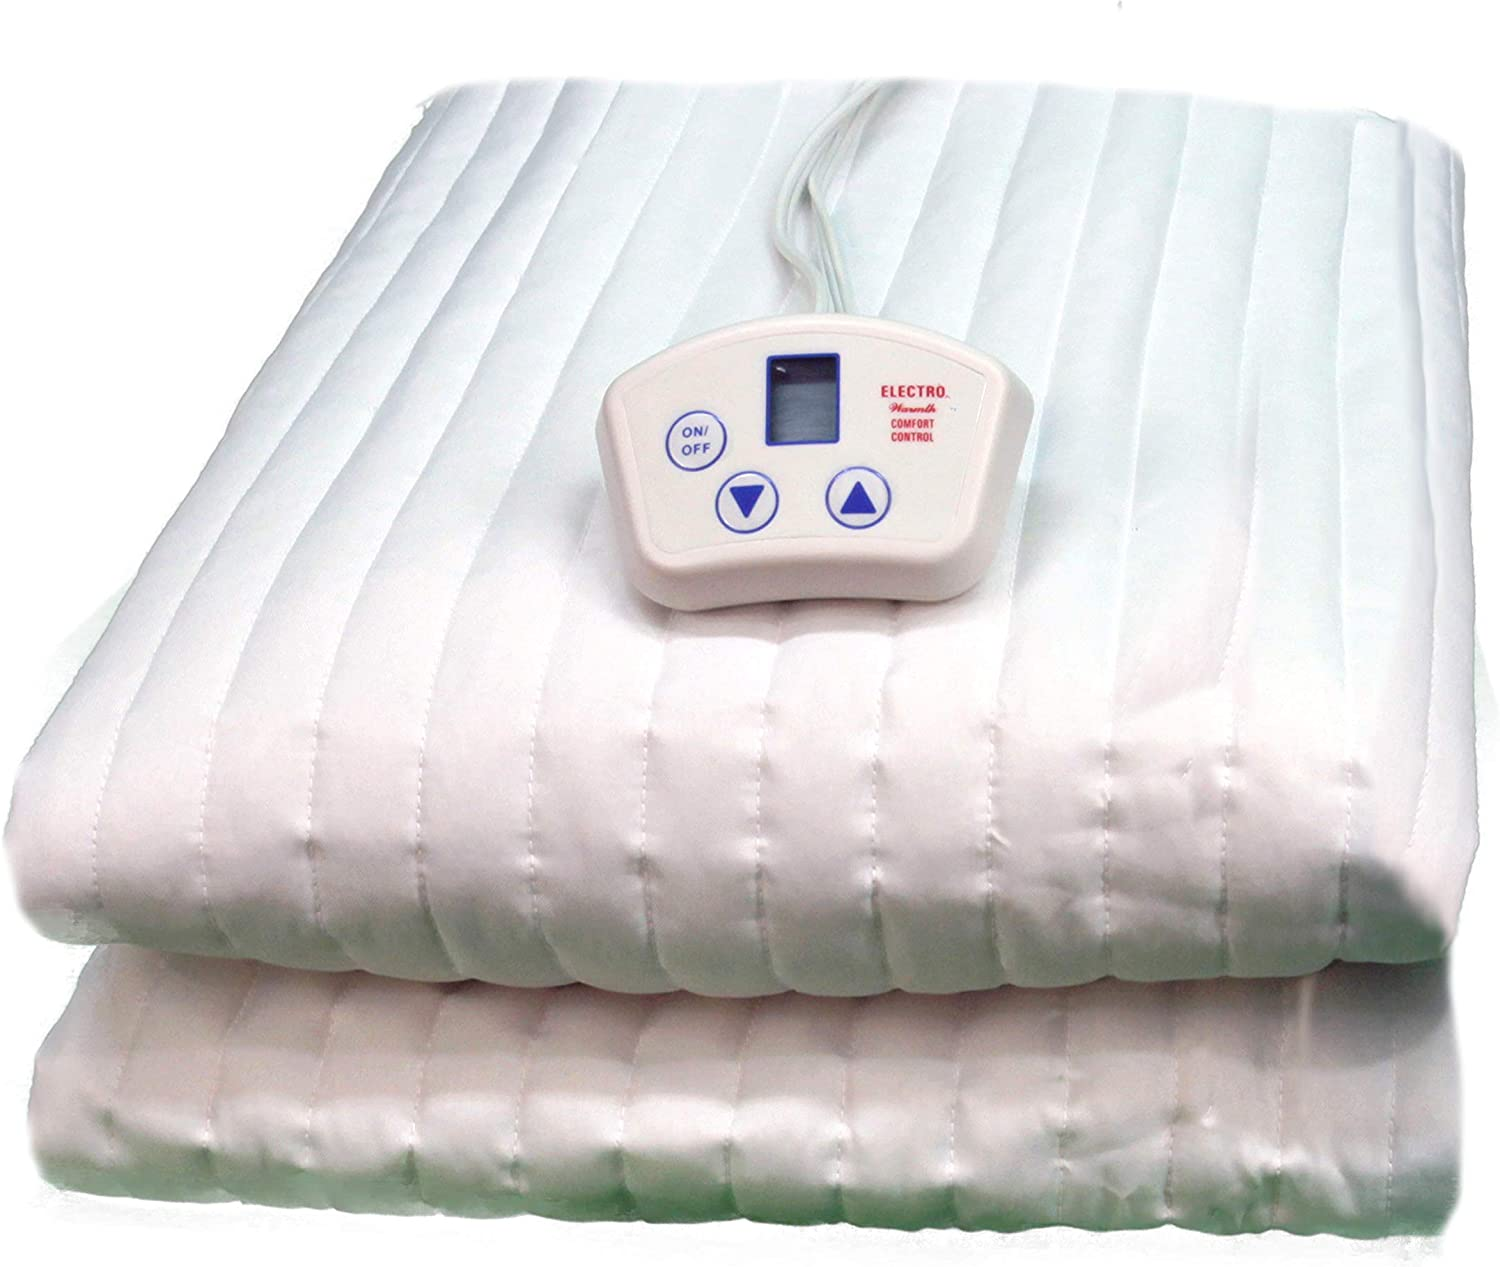 Electrowarmth Twin Extra Max 56% OFF White service Long